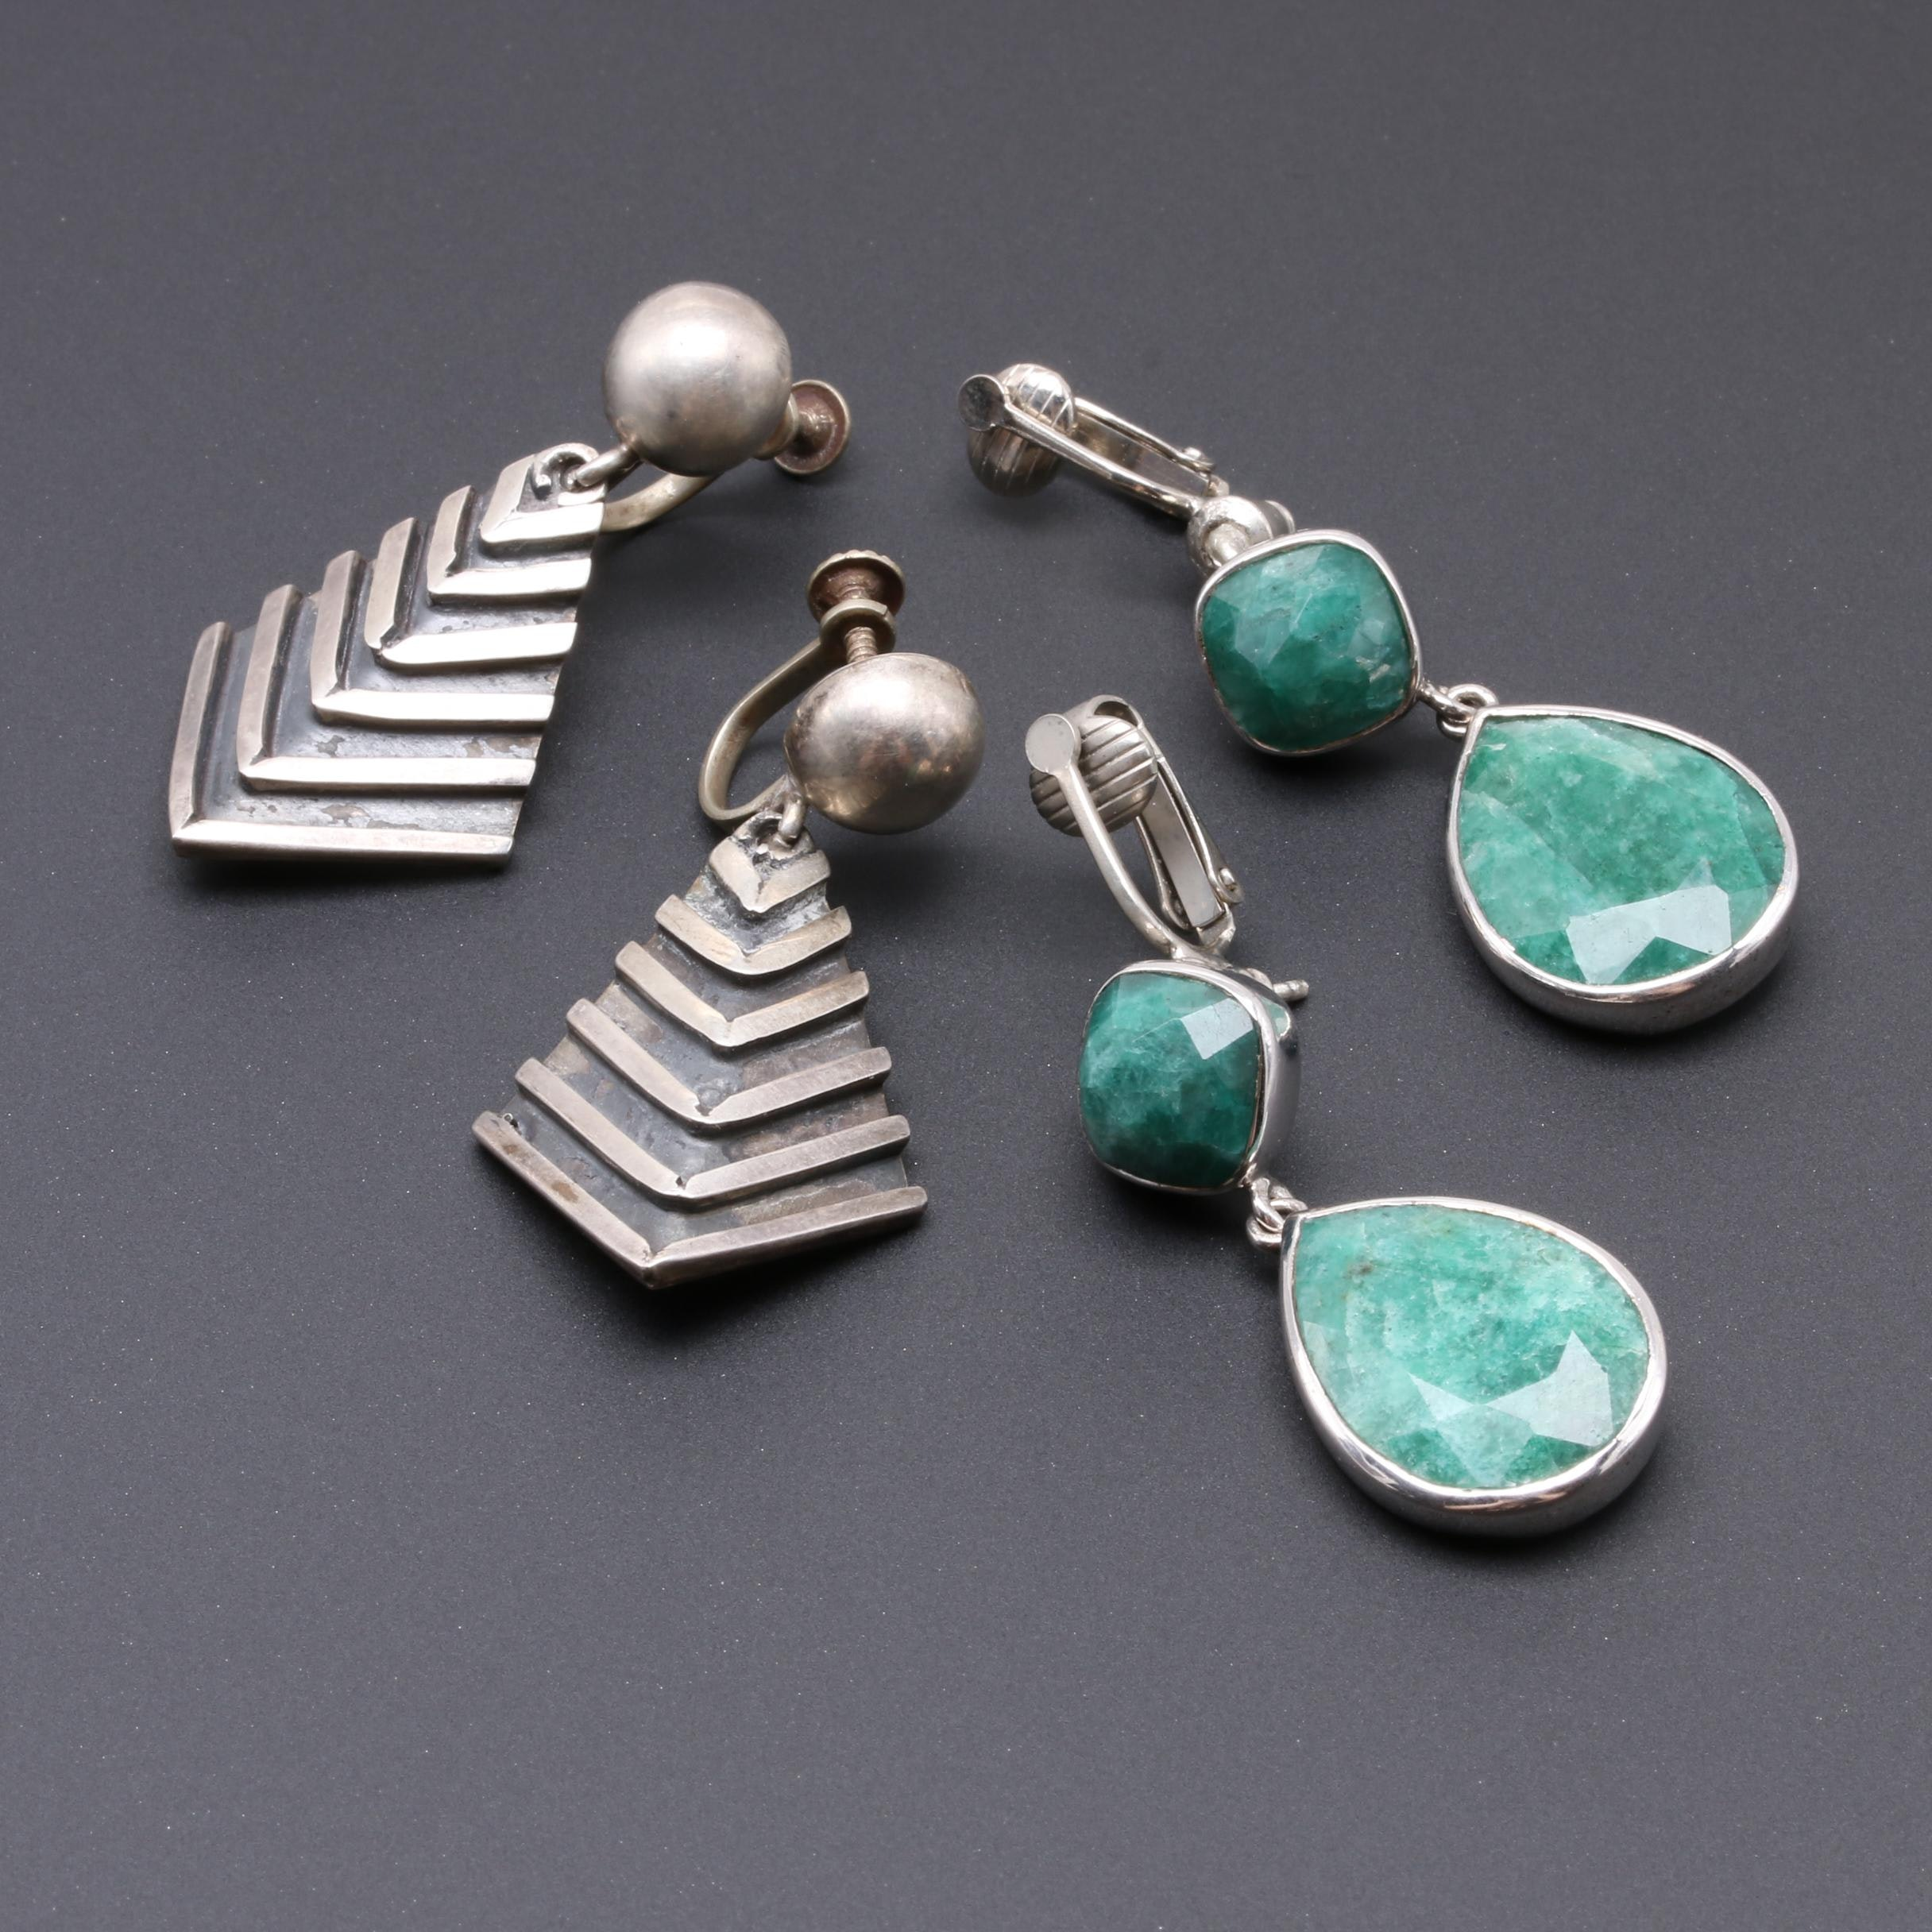 Mexican Sterling Silver Earrings With Dyed Beryl Earrings